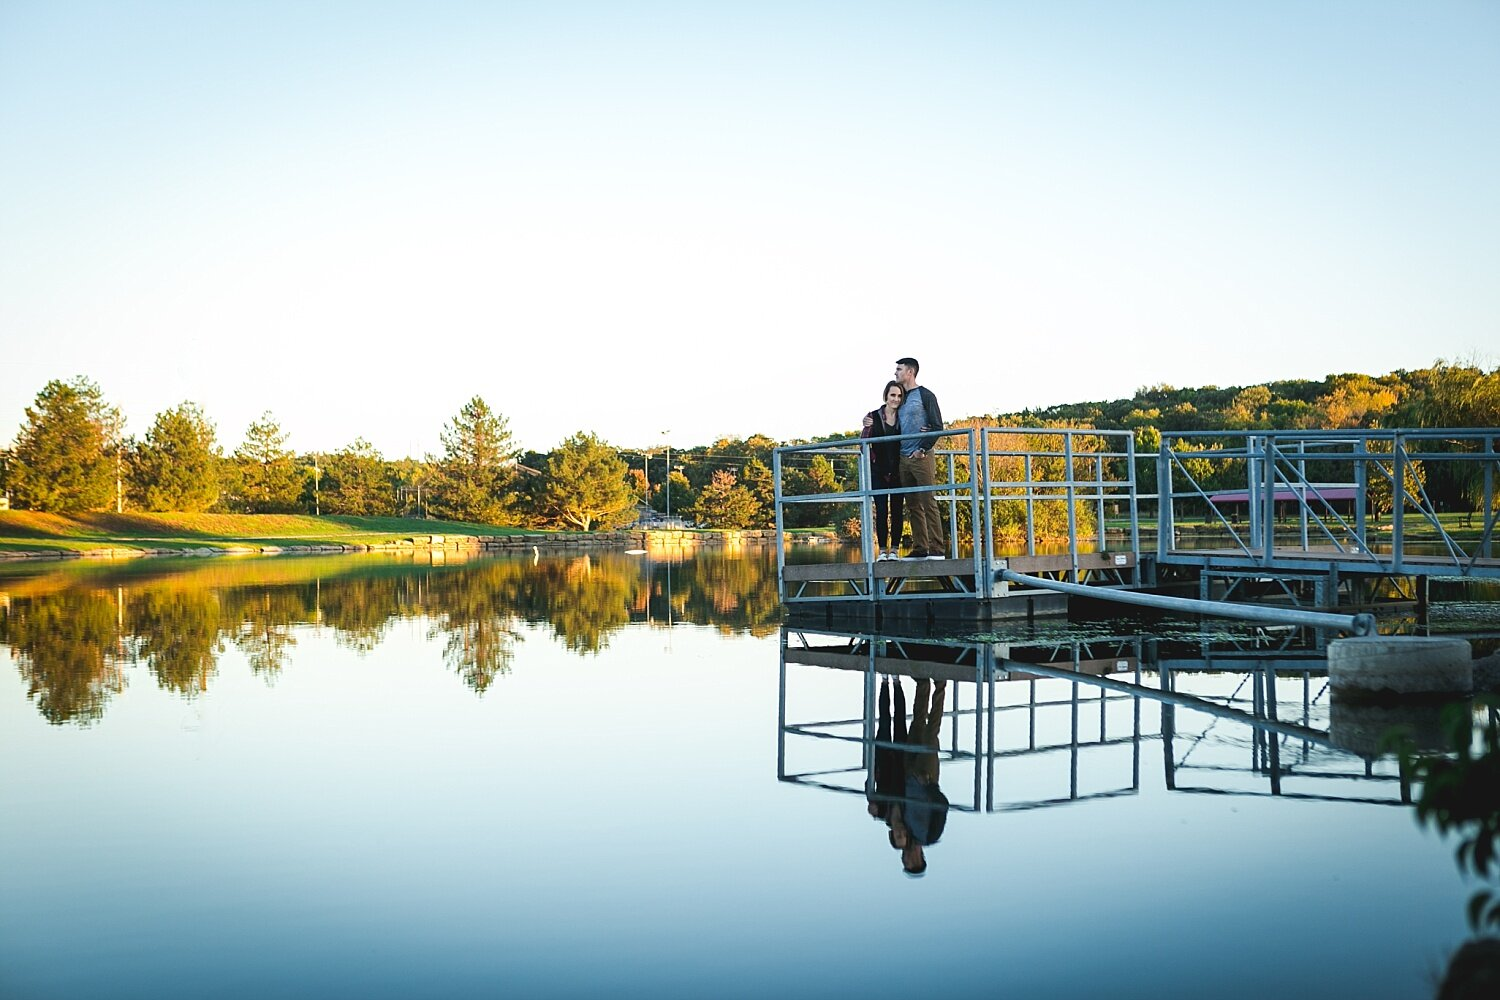 Couple poses on a dock at the fishing pond at Anneberg Park in Manhattan, KS